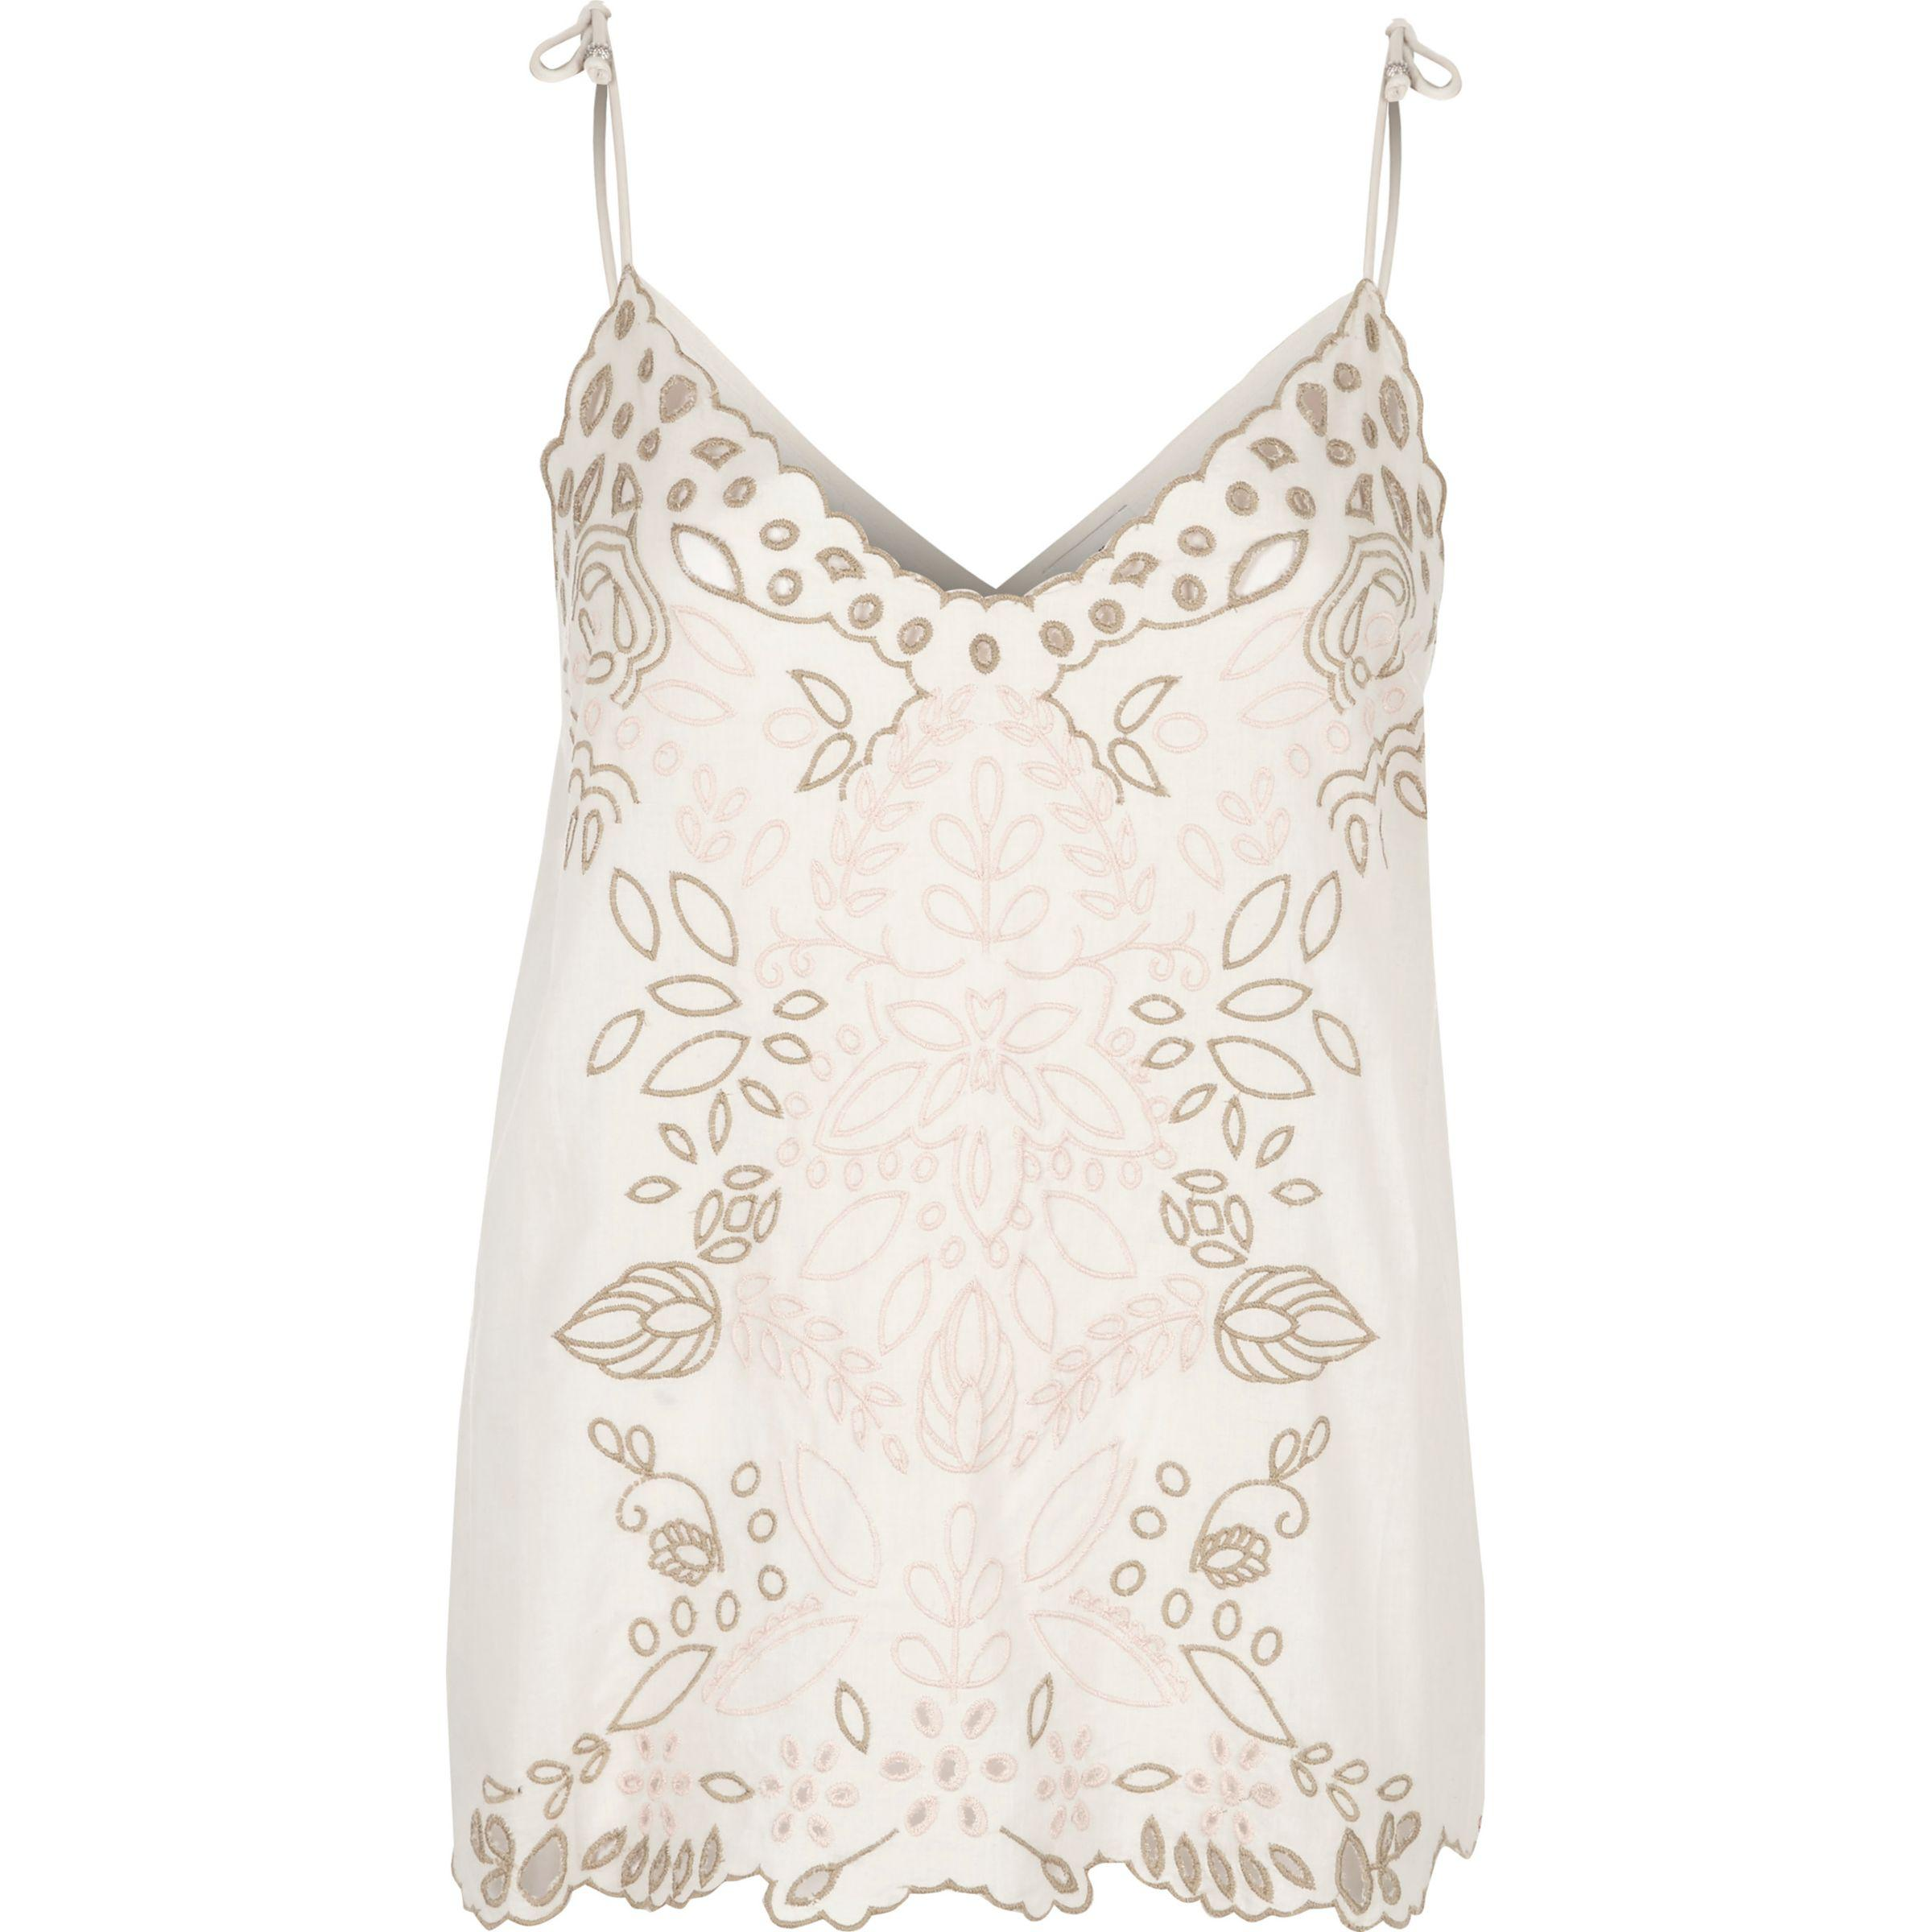 ffdf4f28693 Women's Natural Cream Embroidered Cutwork Bow Cami Top